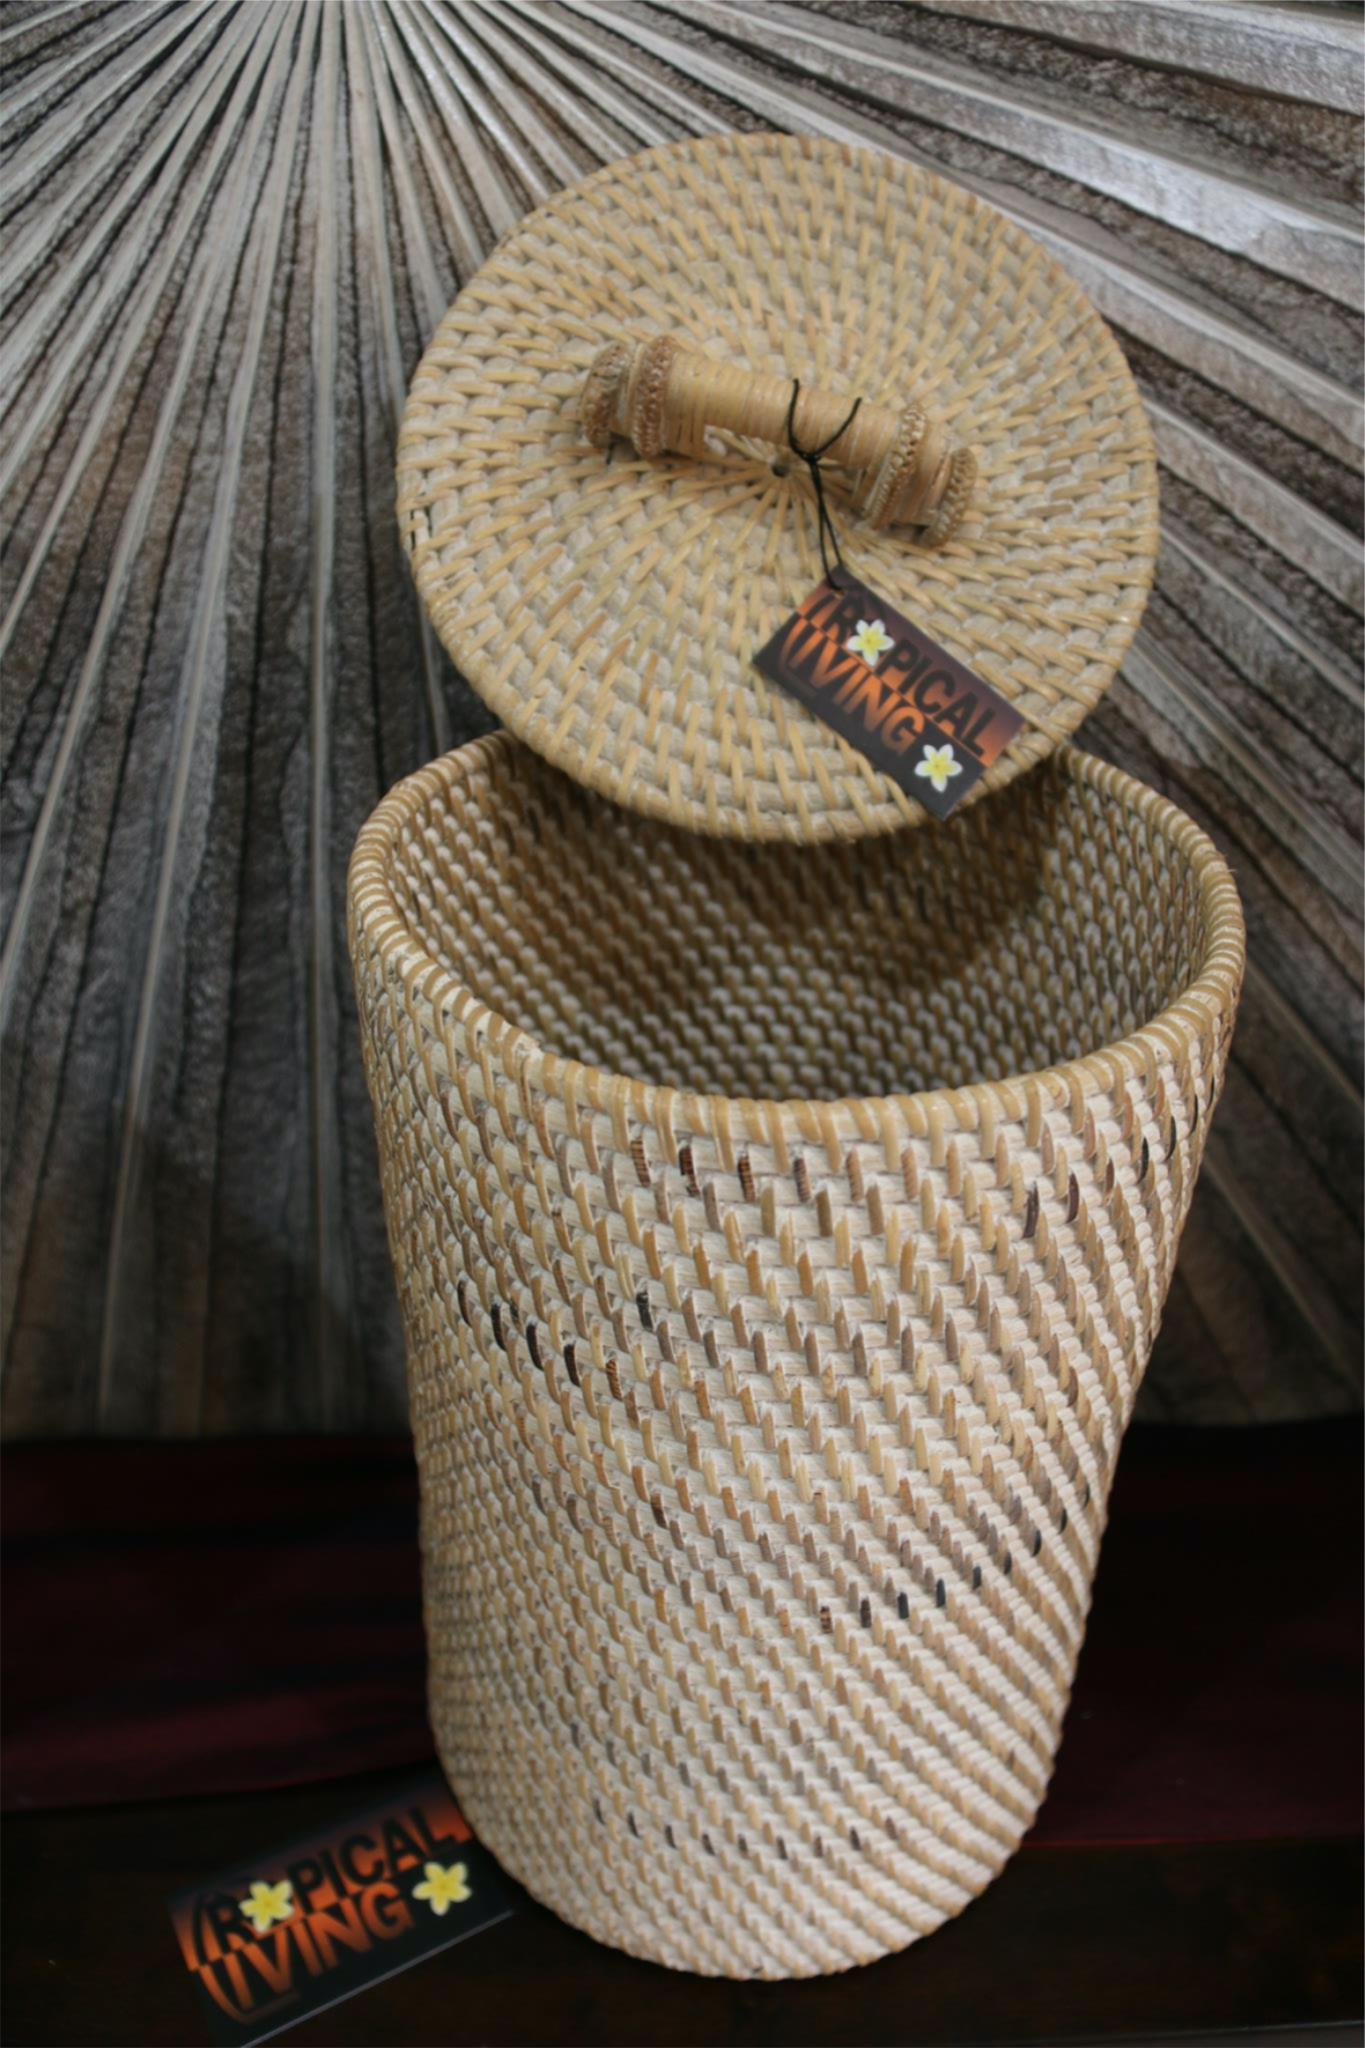 NEW BALINESE WOVEN RATTAN BASKET WITH LID - CHOOSE FROM 2 COLOURS